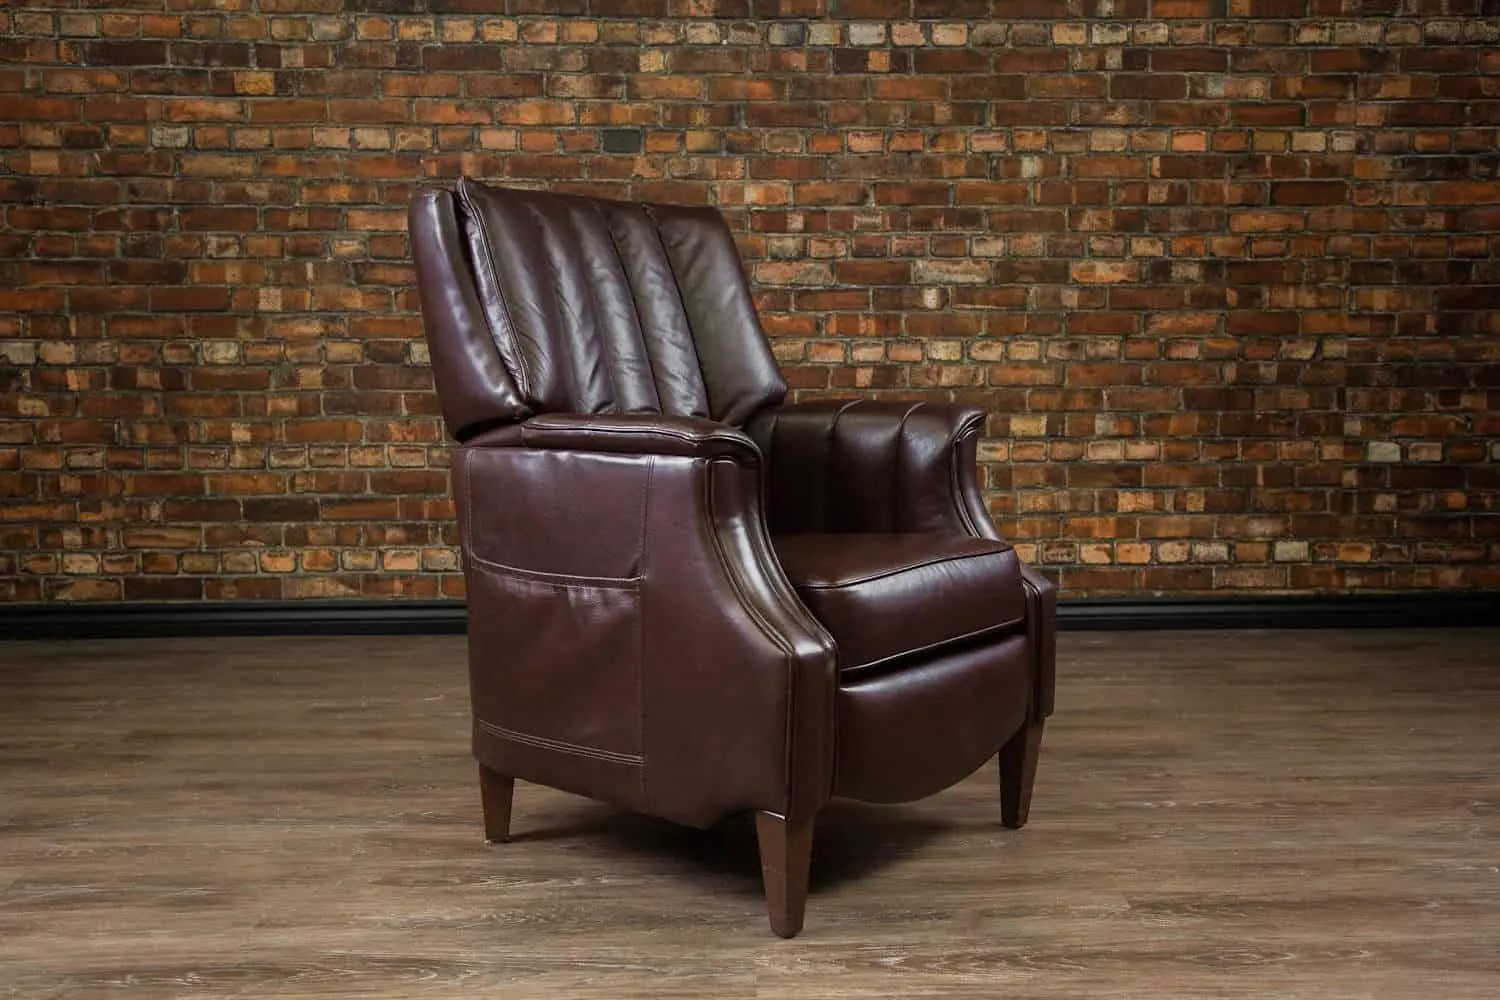 Leather Recliner Chairs Canada The Library Leather Recliner Chair Canada 39s Boss Leather